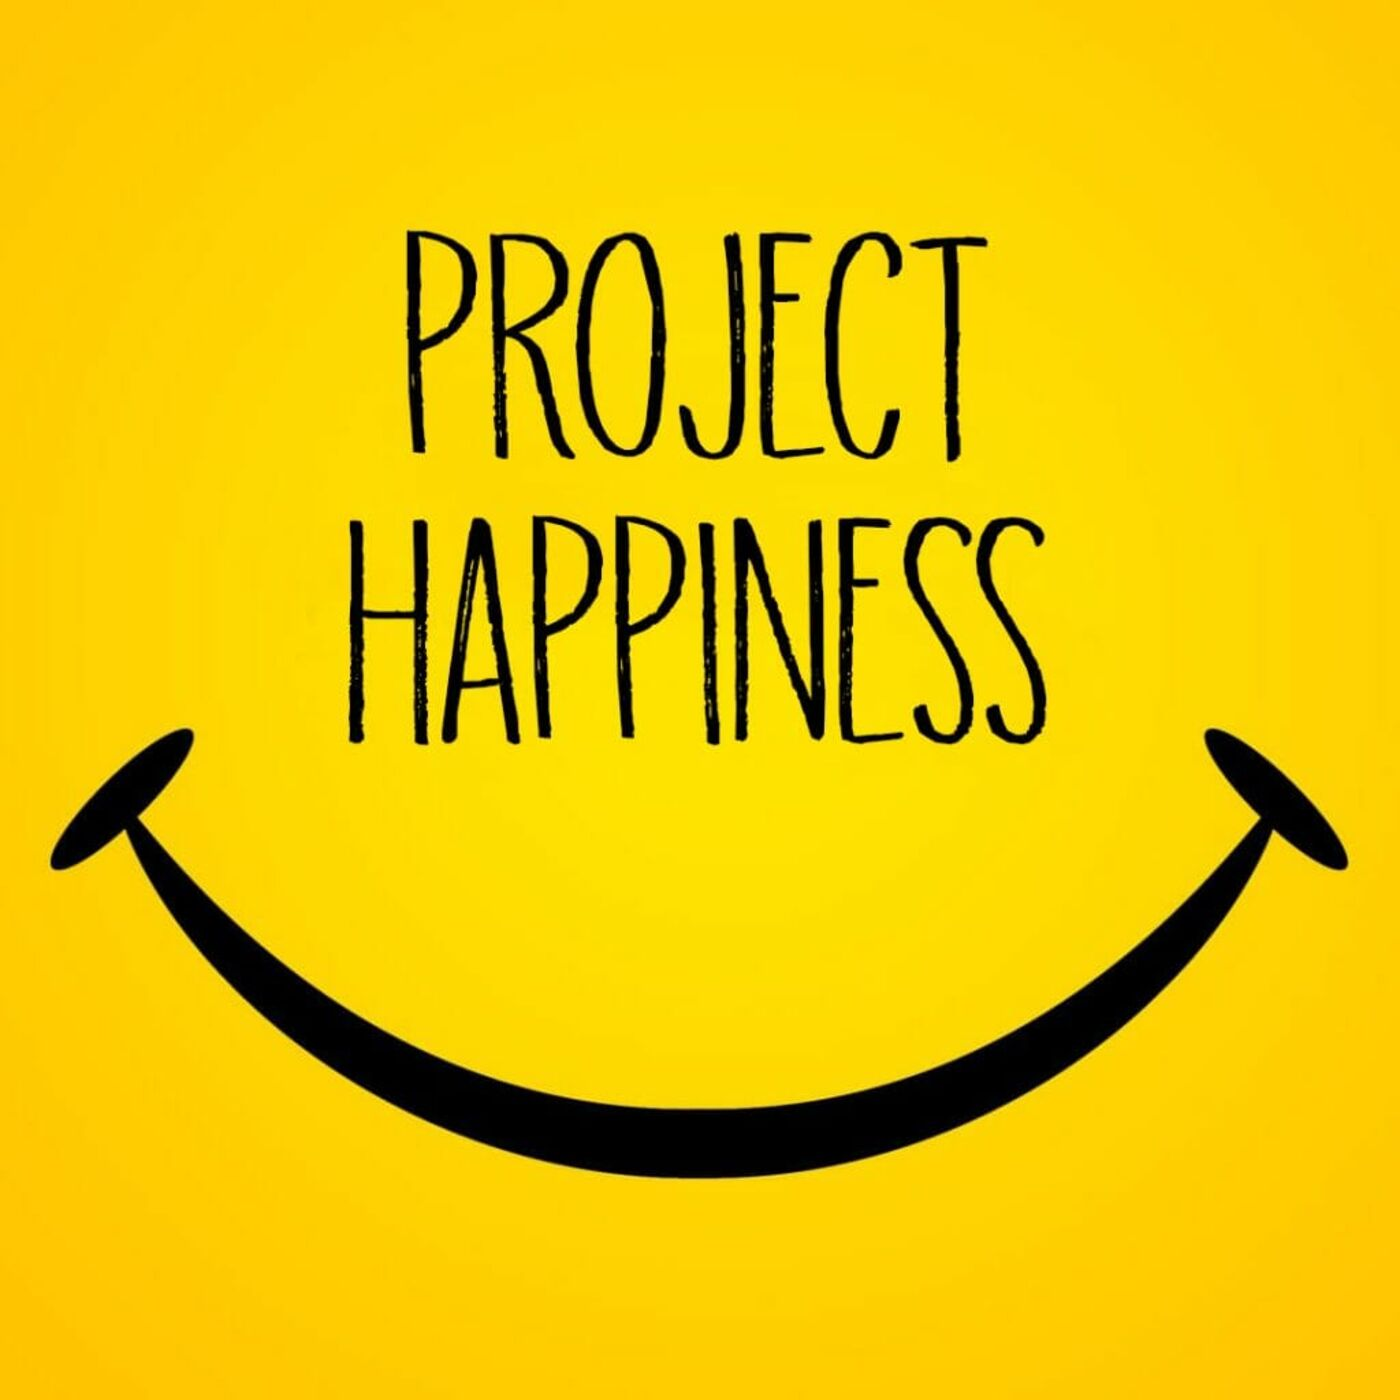 Project Happiness: Minds lie and circumstances don't matter